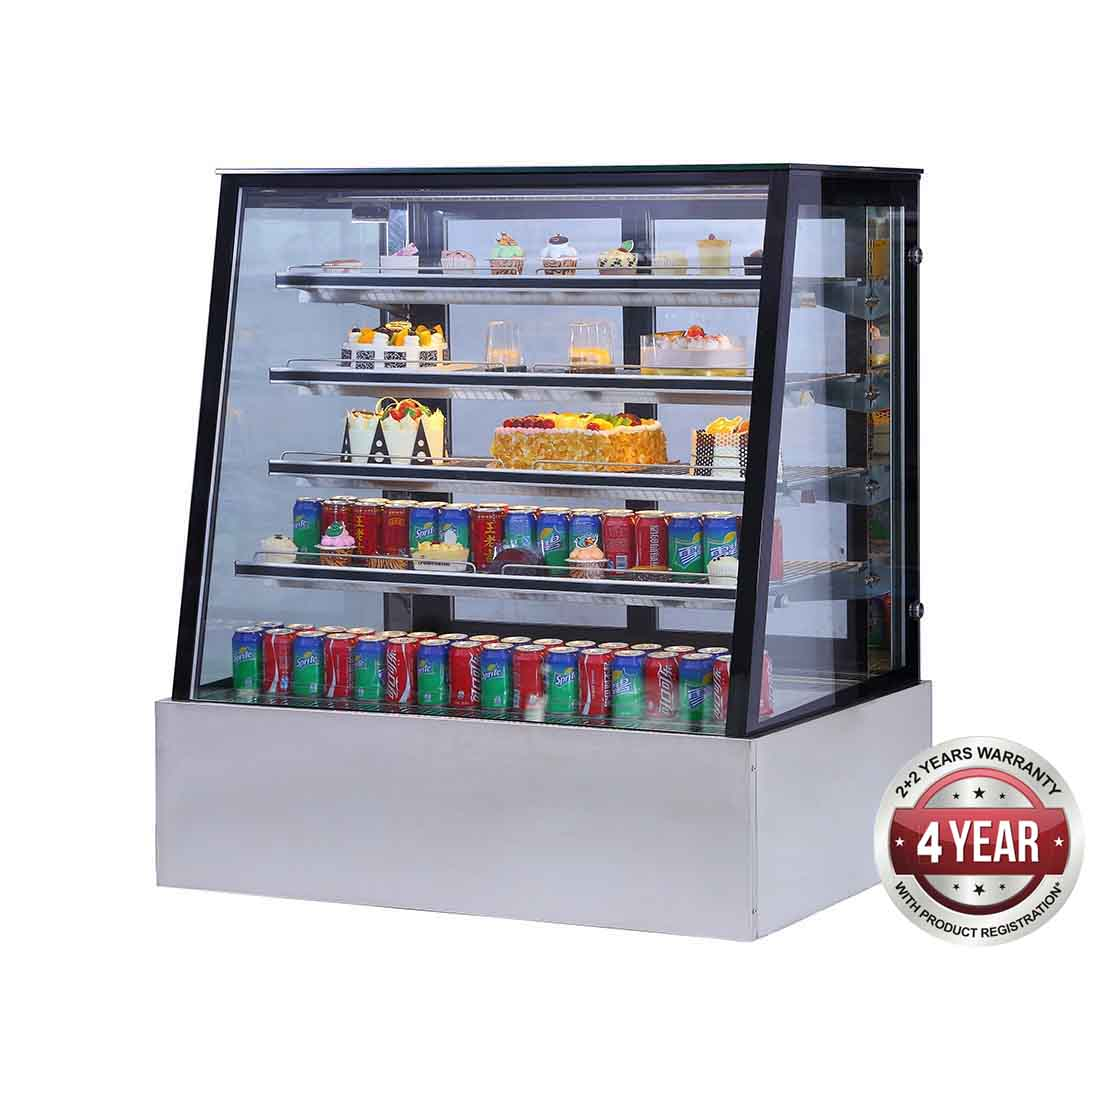 SLP830C Bonvue Deluxe Chilled Display Cabinet 900x800x1350